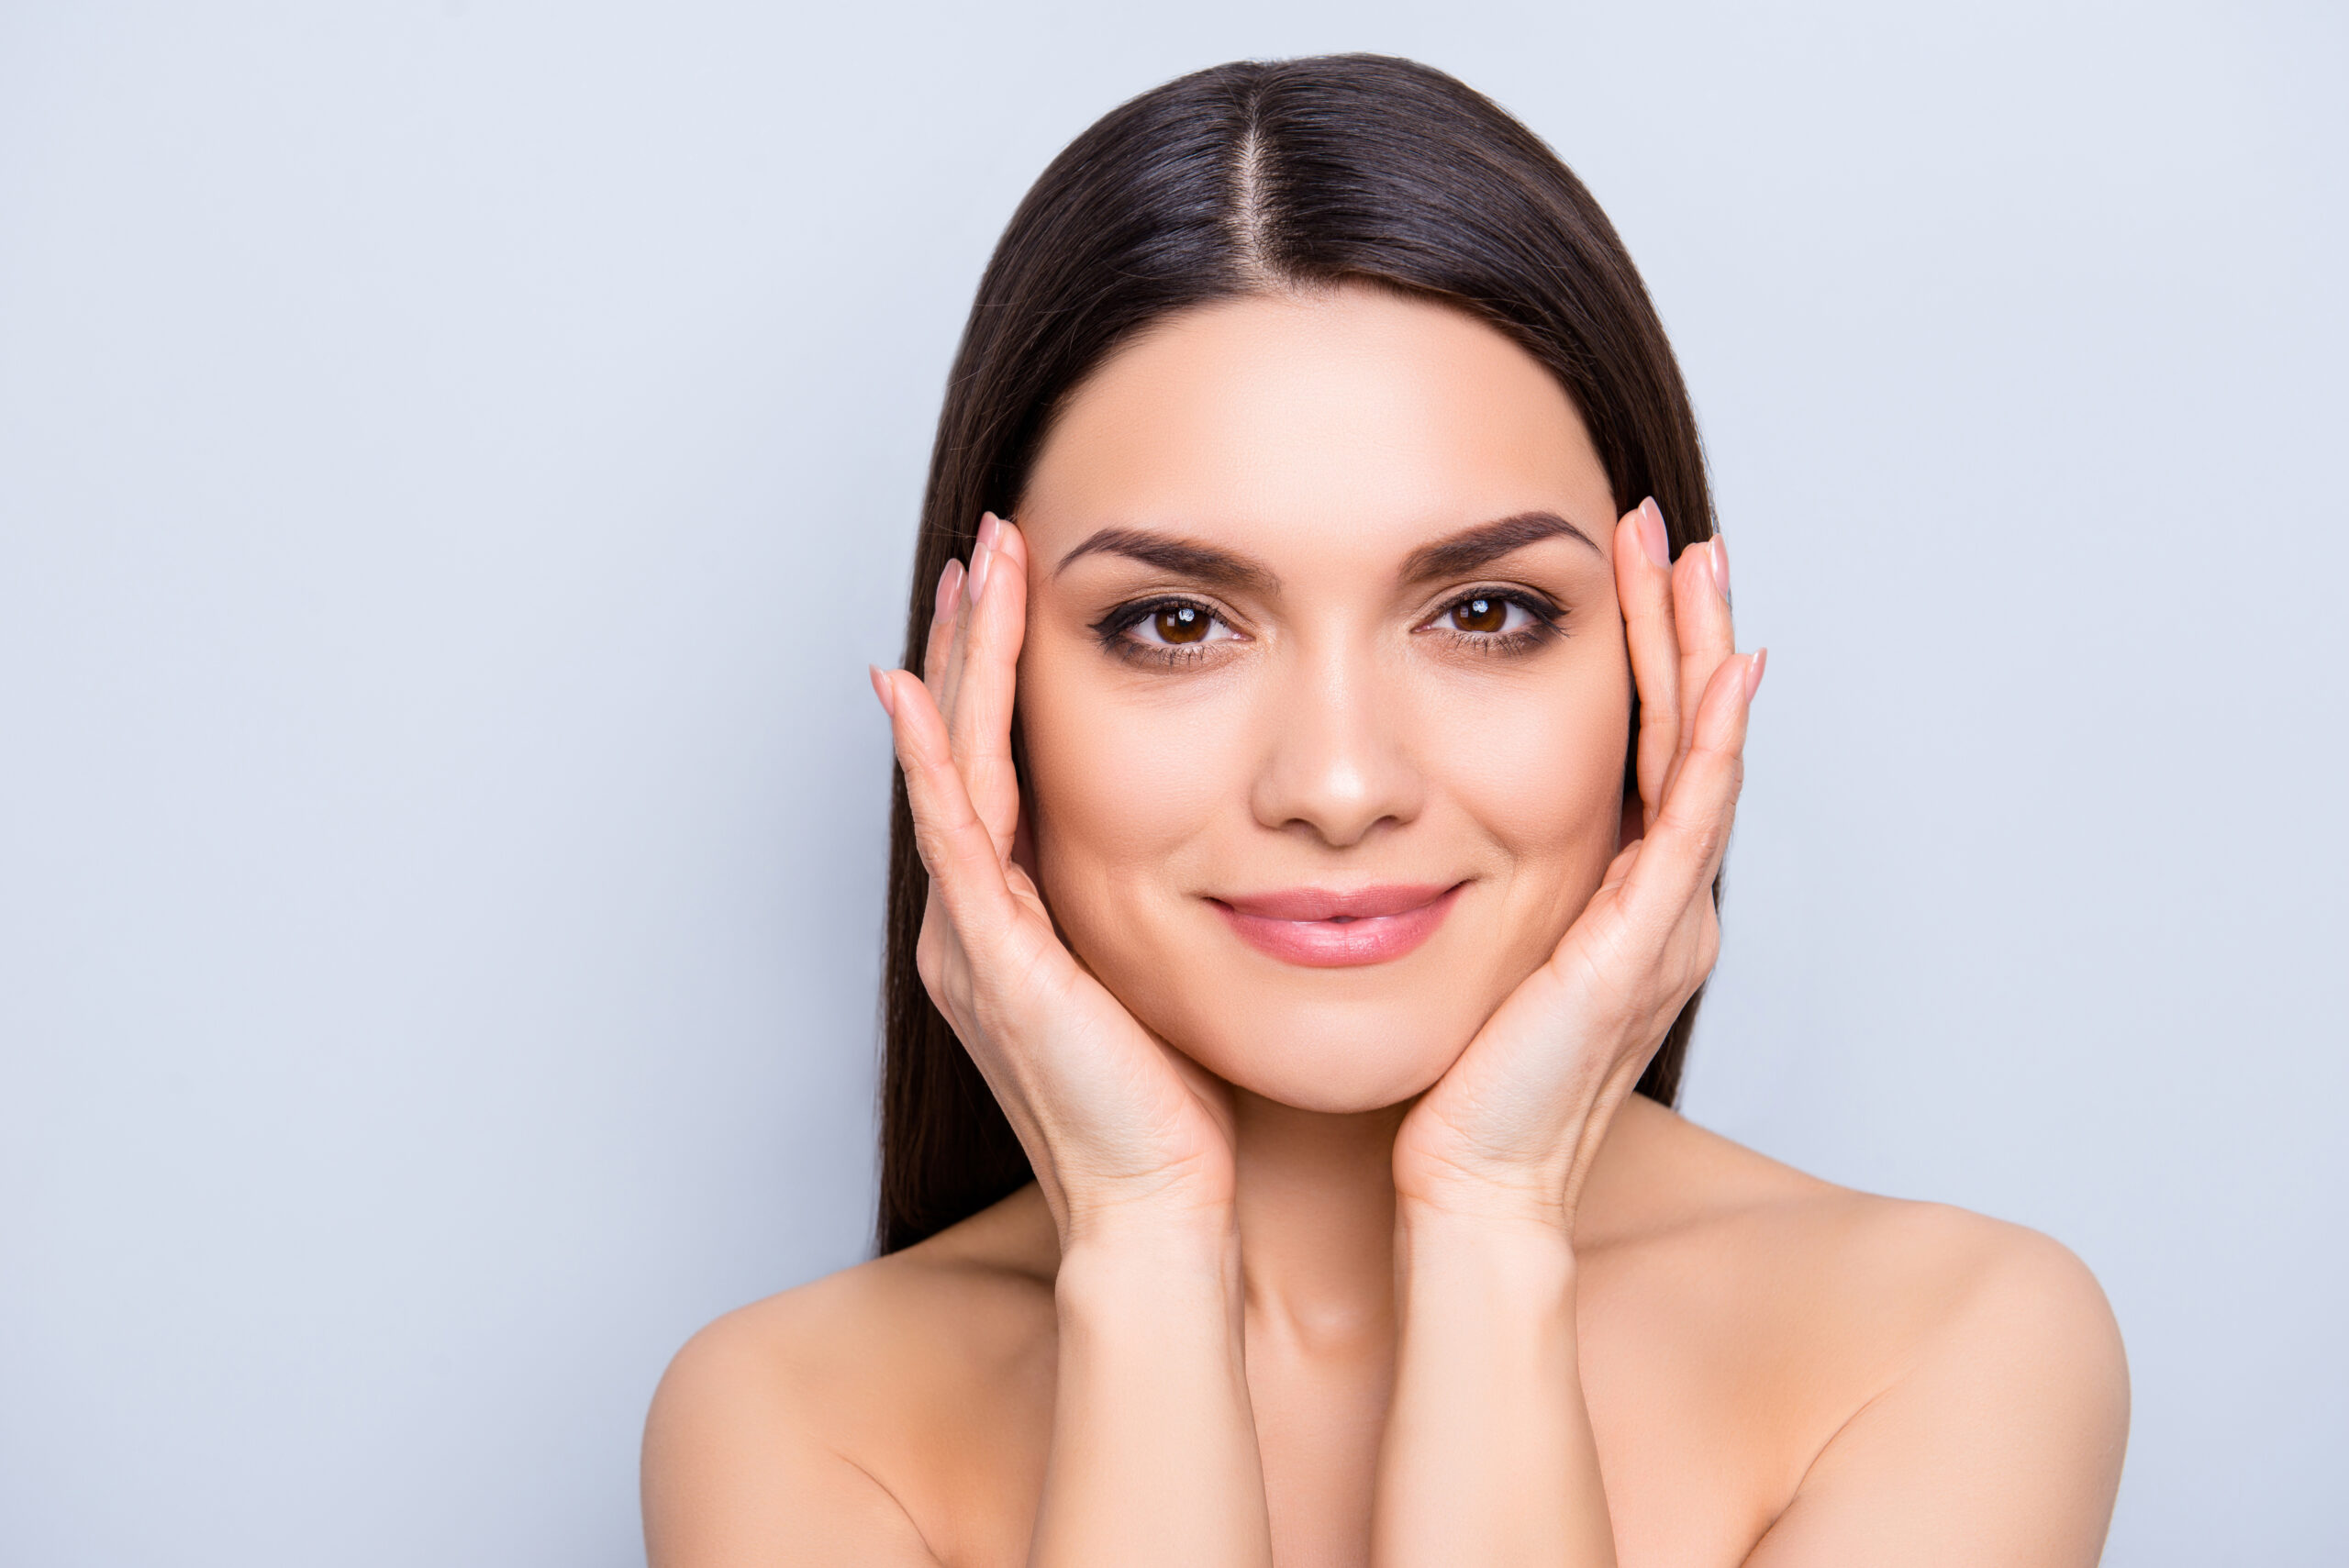 Woman With Smooth, Wrinkle Free Skin